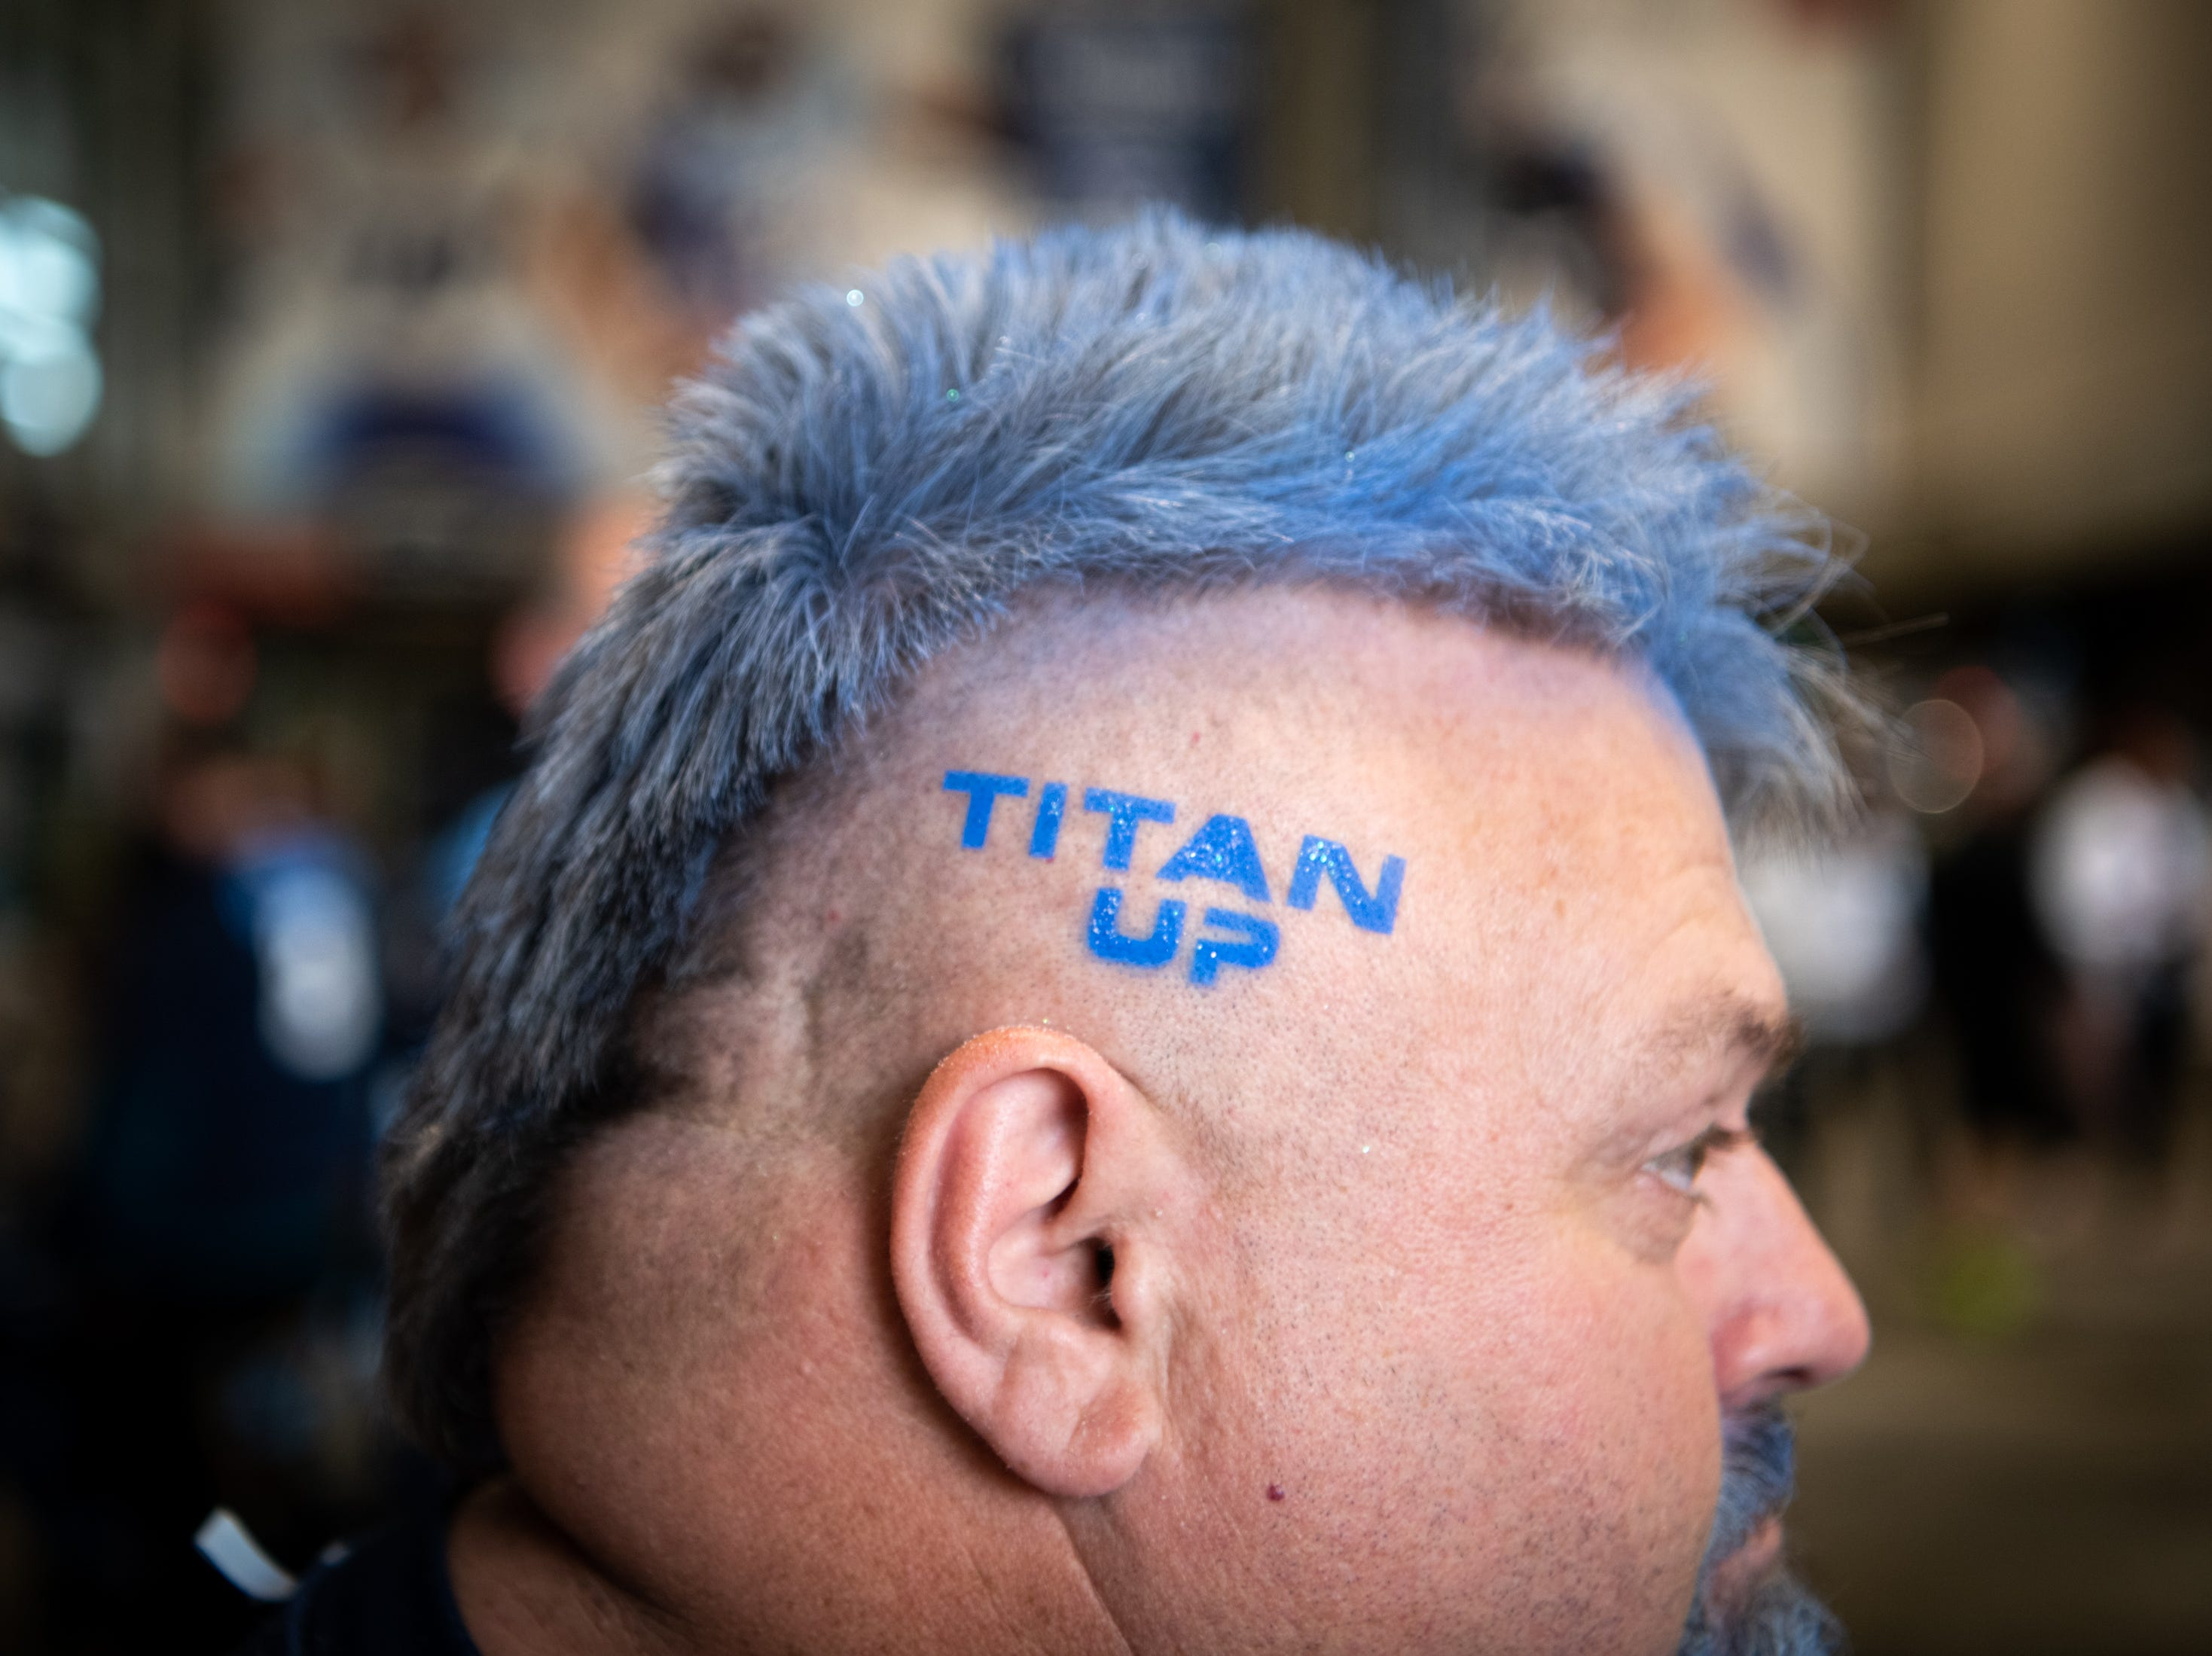 Richard Brewer, of Loretto, Tenn., heads into the stadium before the game between the Tennessee Titans and the Baltimore Ravens at Nissan Stadium in Nashville, Tenn., Sunday, Oct. 14, 2018.